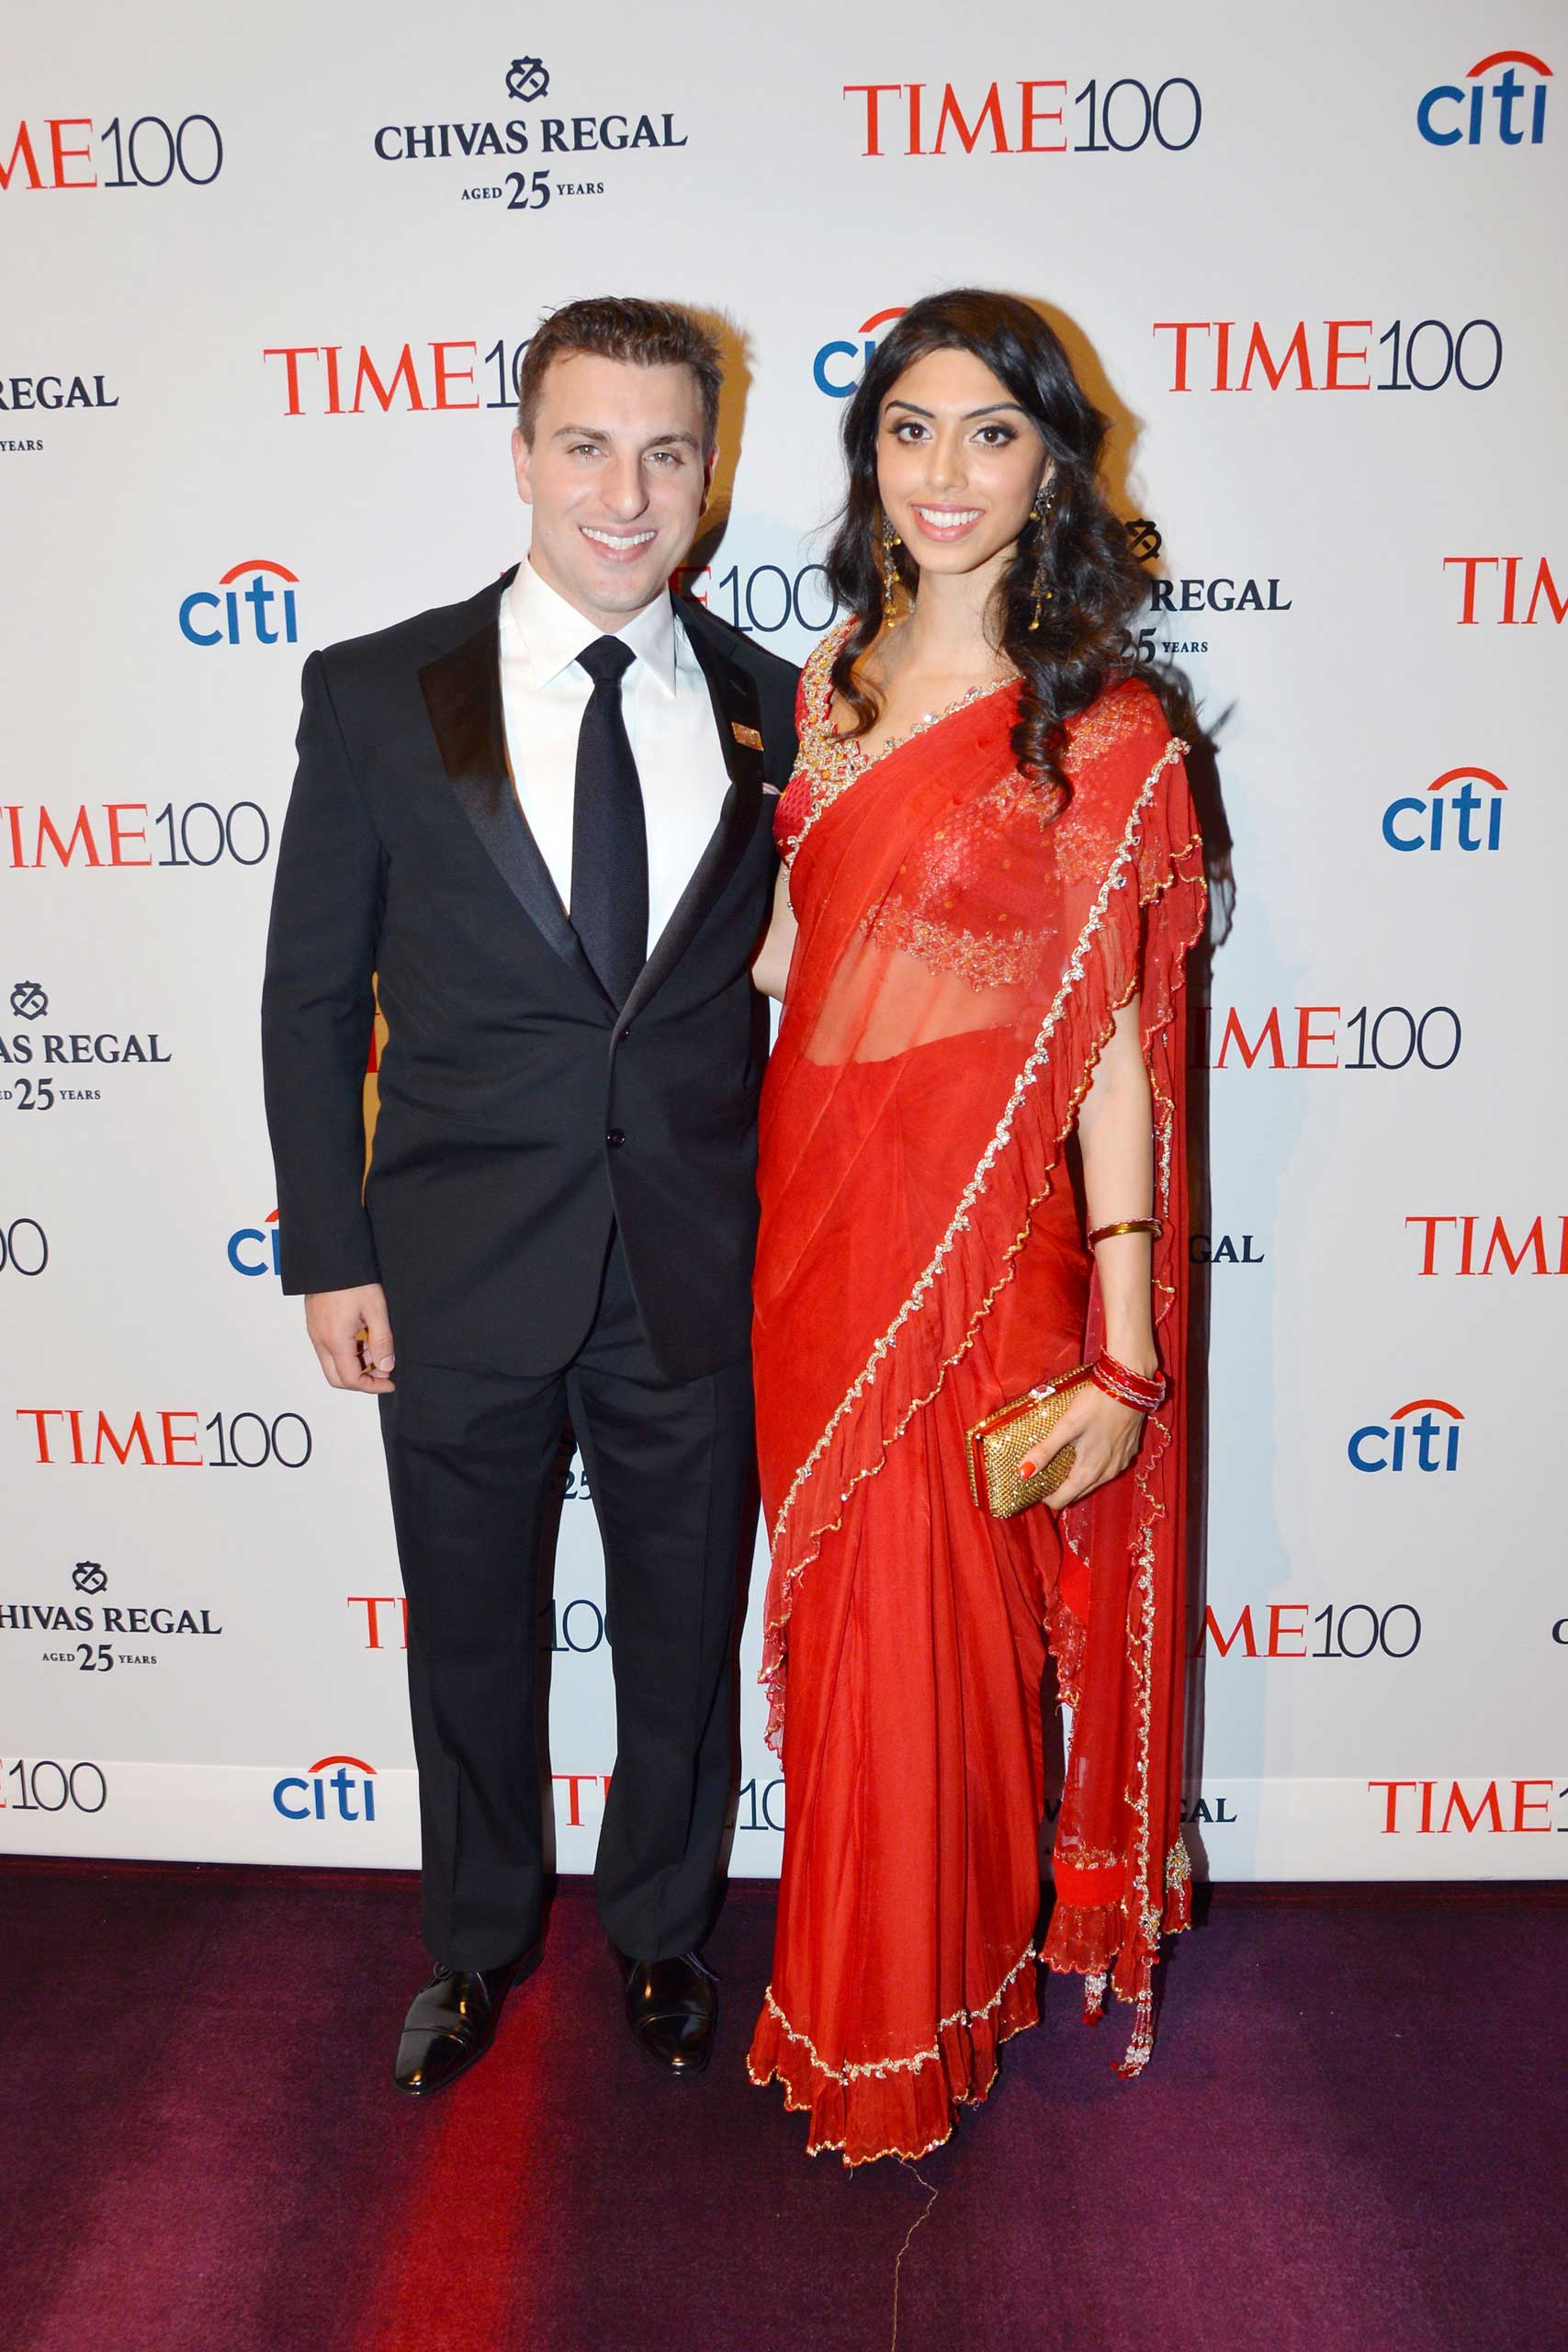 Brian Chesky and Elissa Patel attend the TIME 100 Gala at Jazz at Lincoln Center in New York City on April 21, 2015.